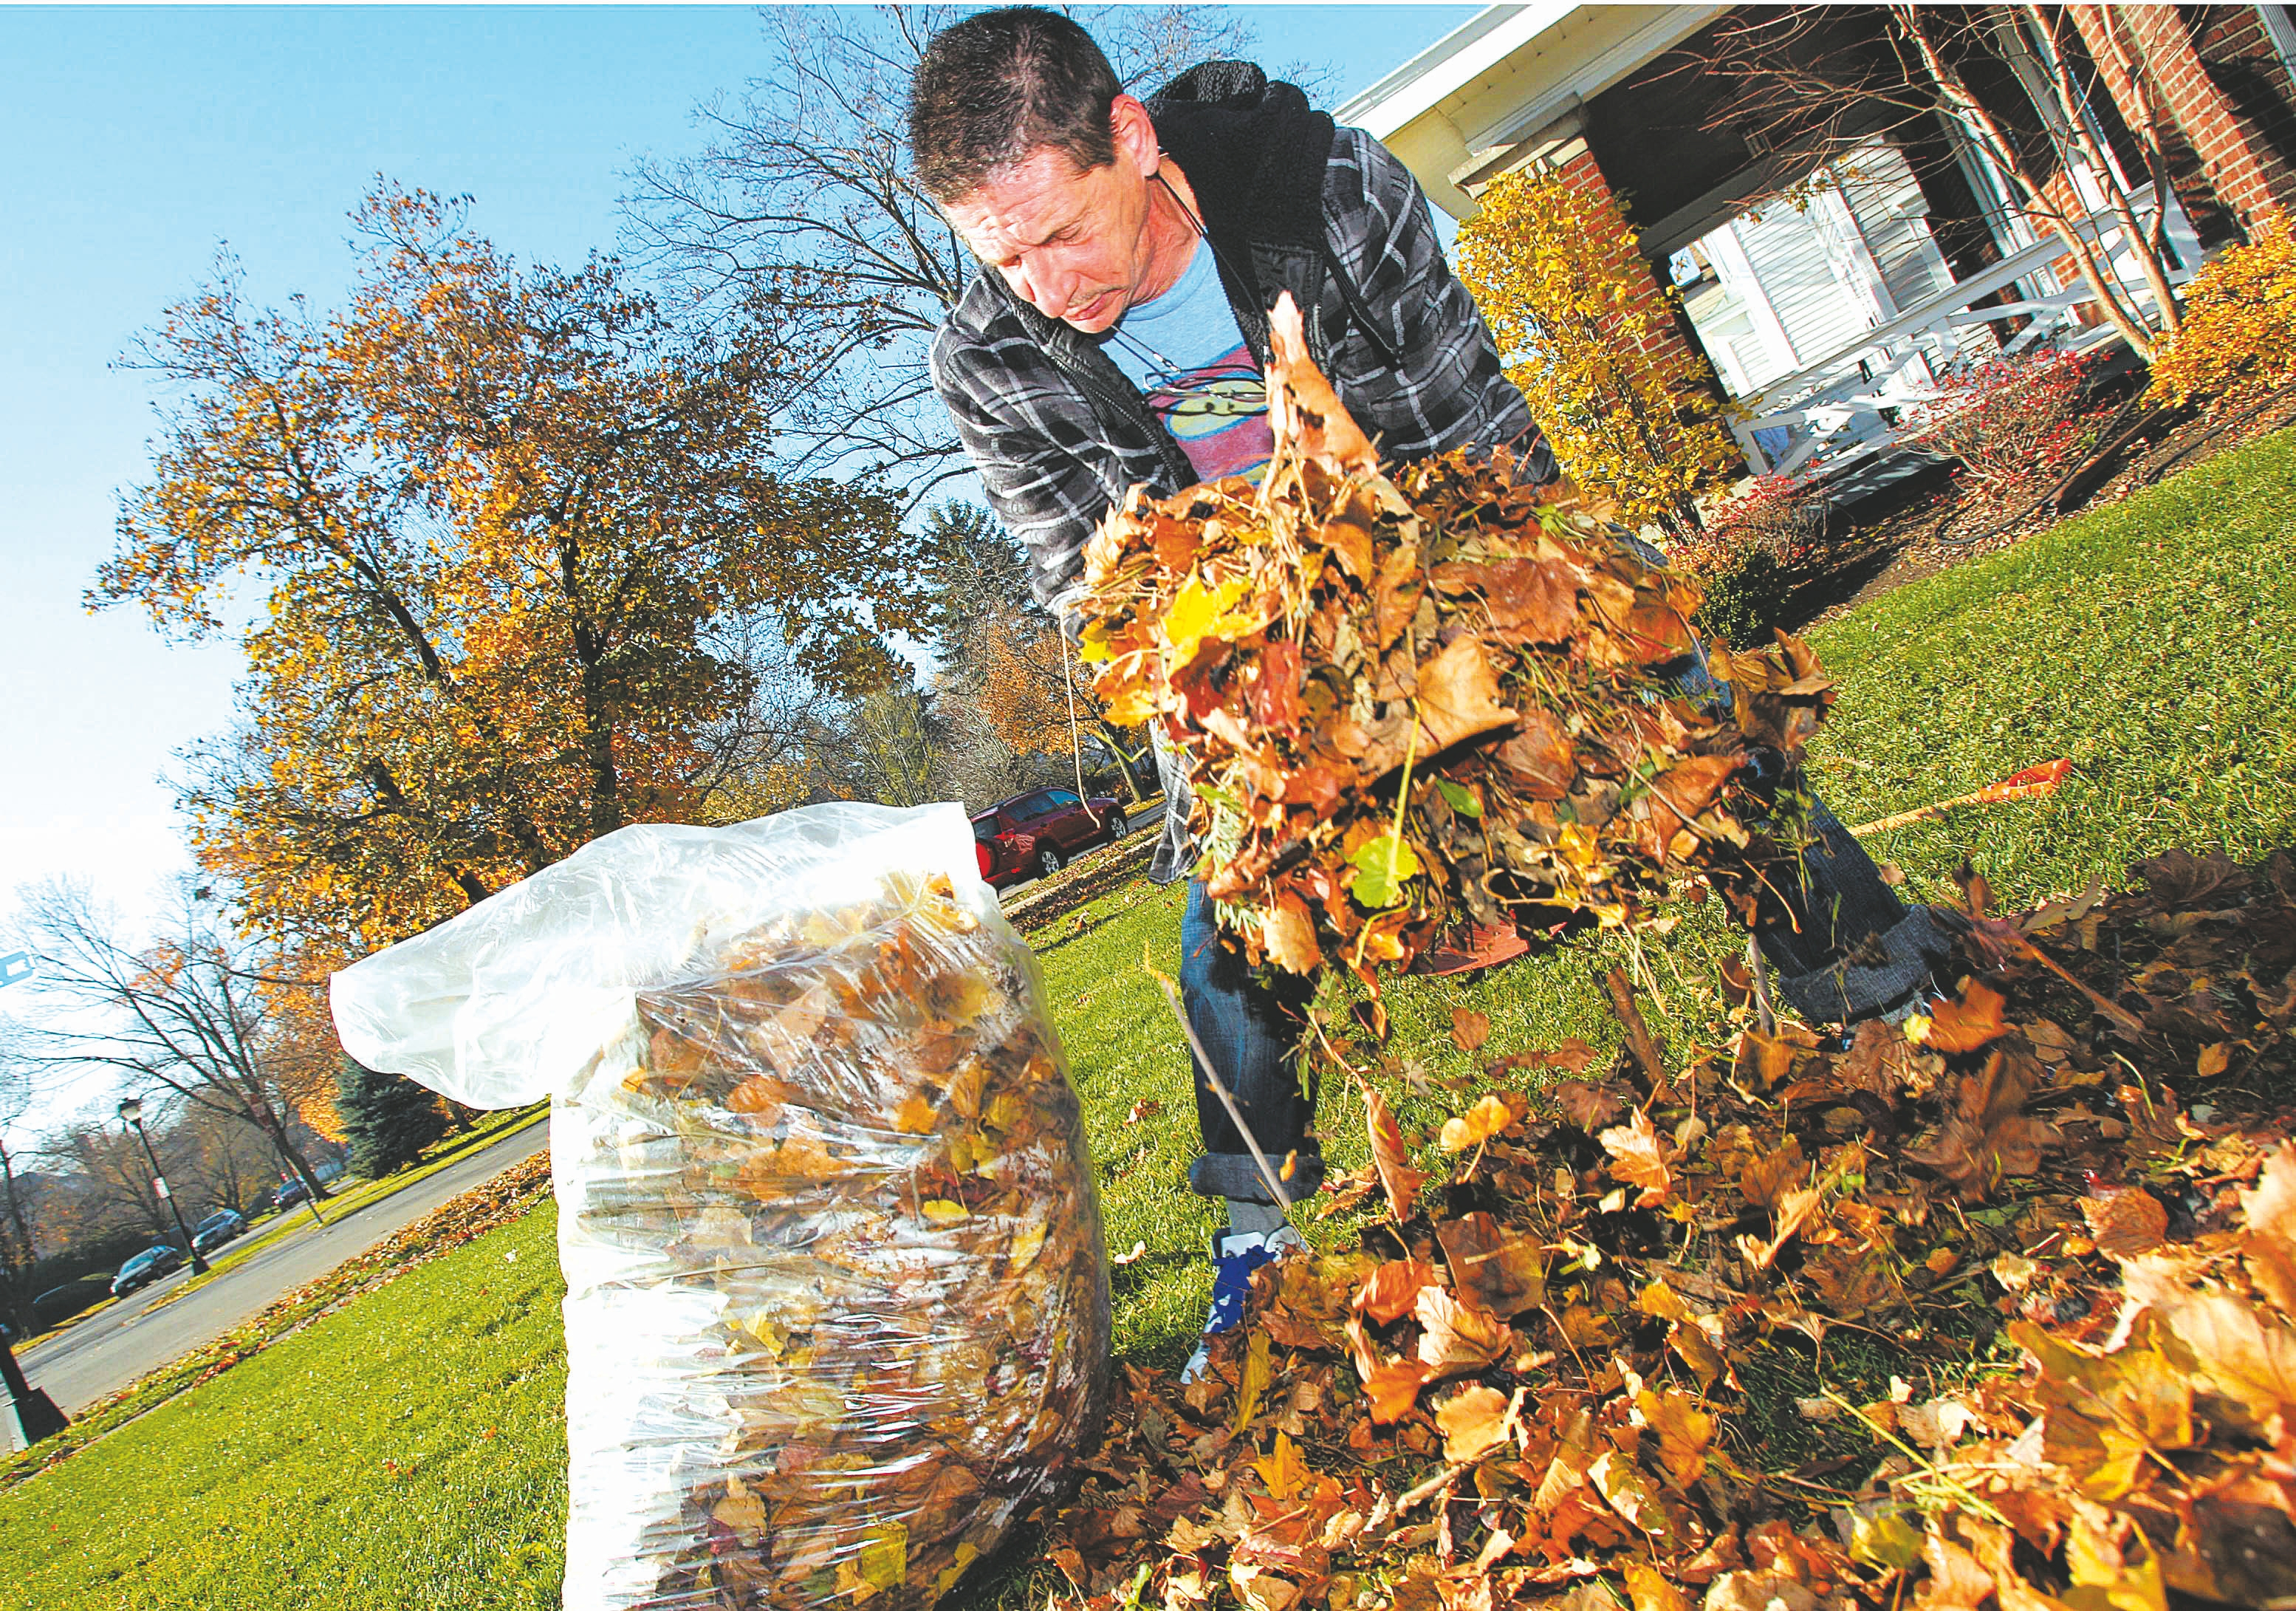 Use a sturdy, comfortable rake for leaves, and be sure to wear gloves to prevent blisters if the handle isn't padded.